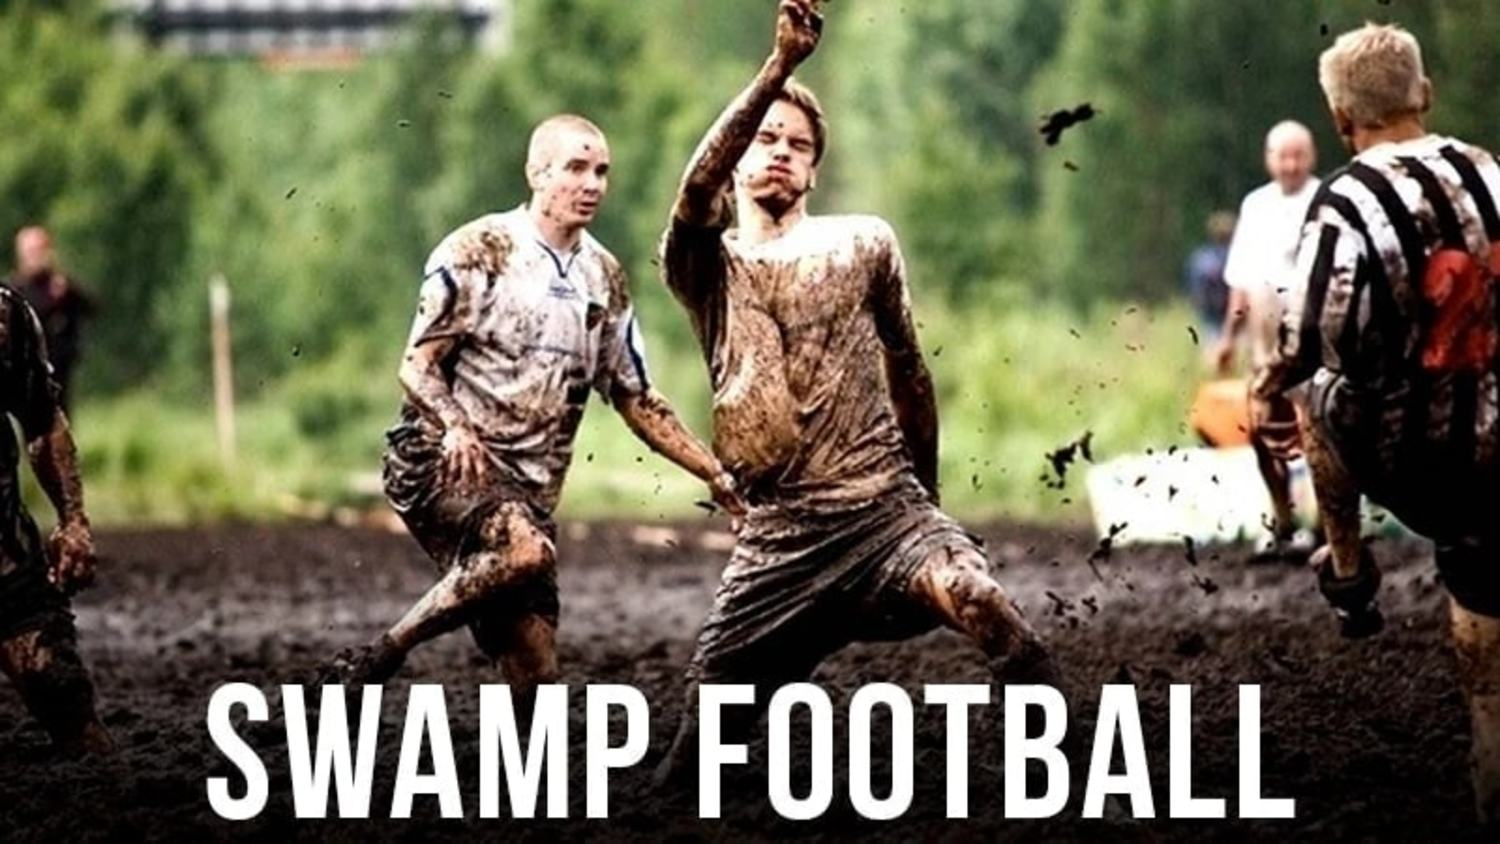 Swamp Football: The ugliest way to play the beautiful game?